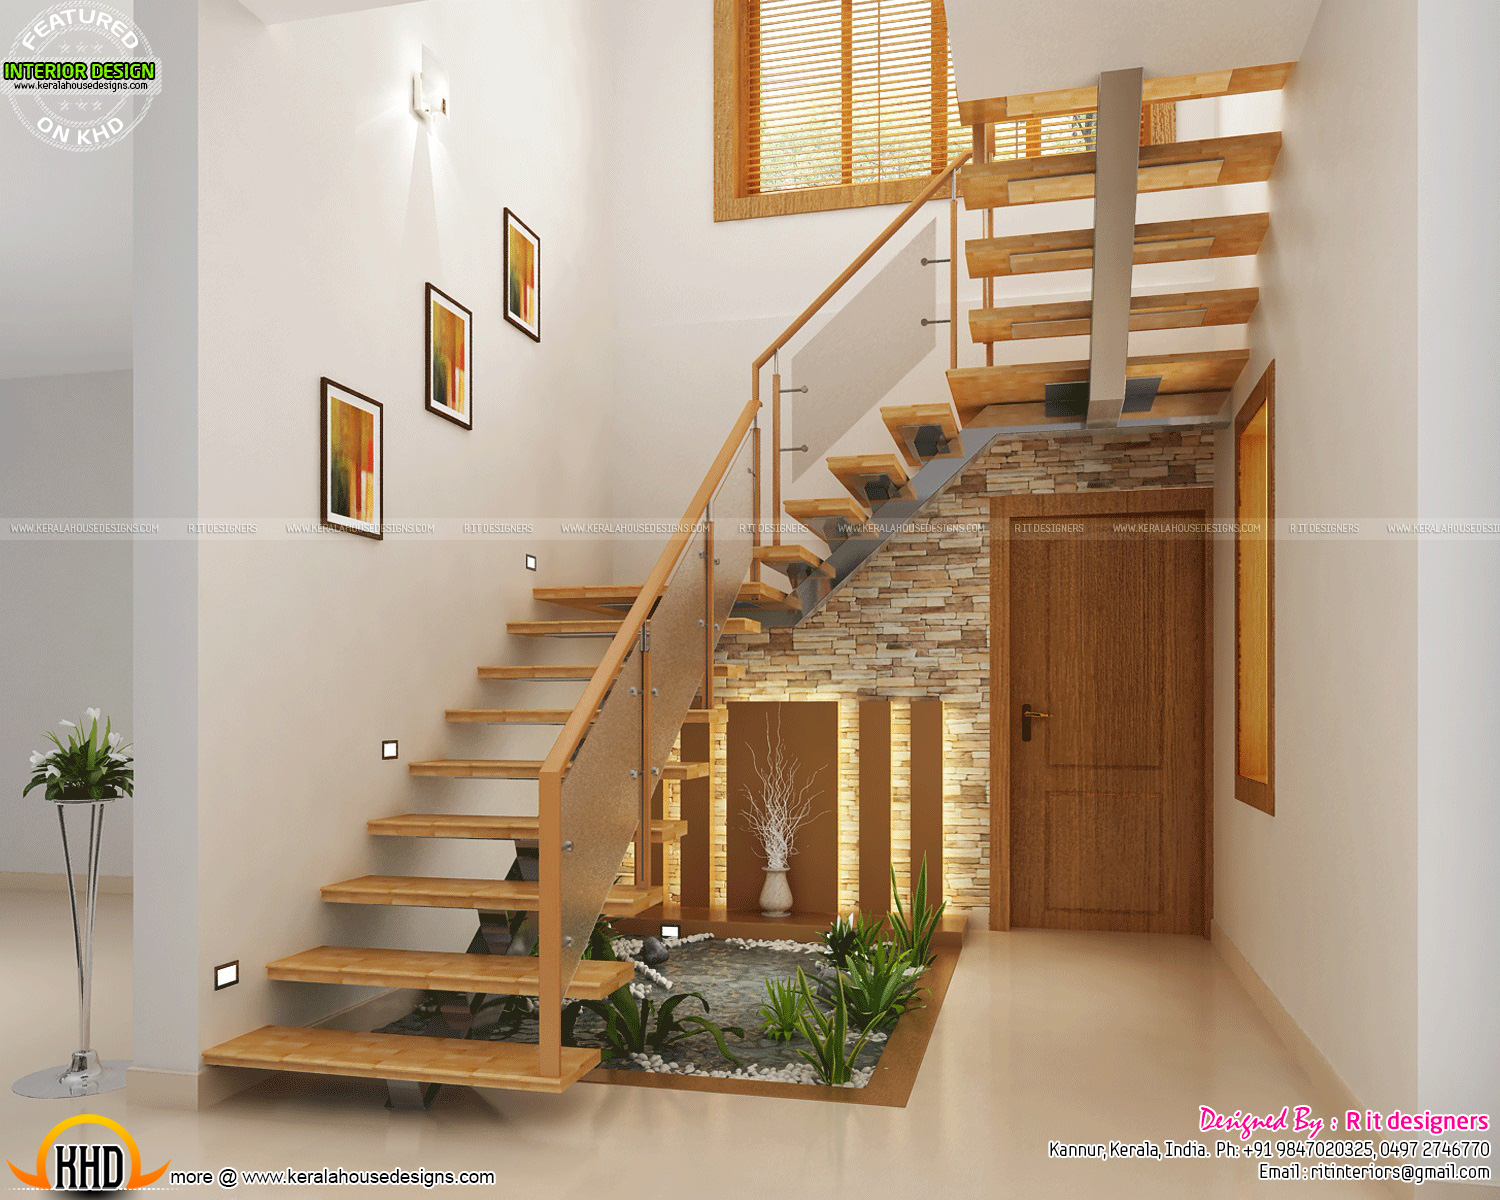 Under stair design wooden stair kitchen and living for Kitchen designs under stairs